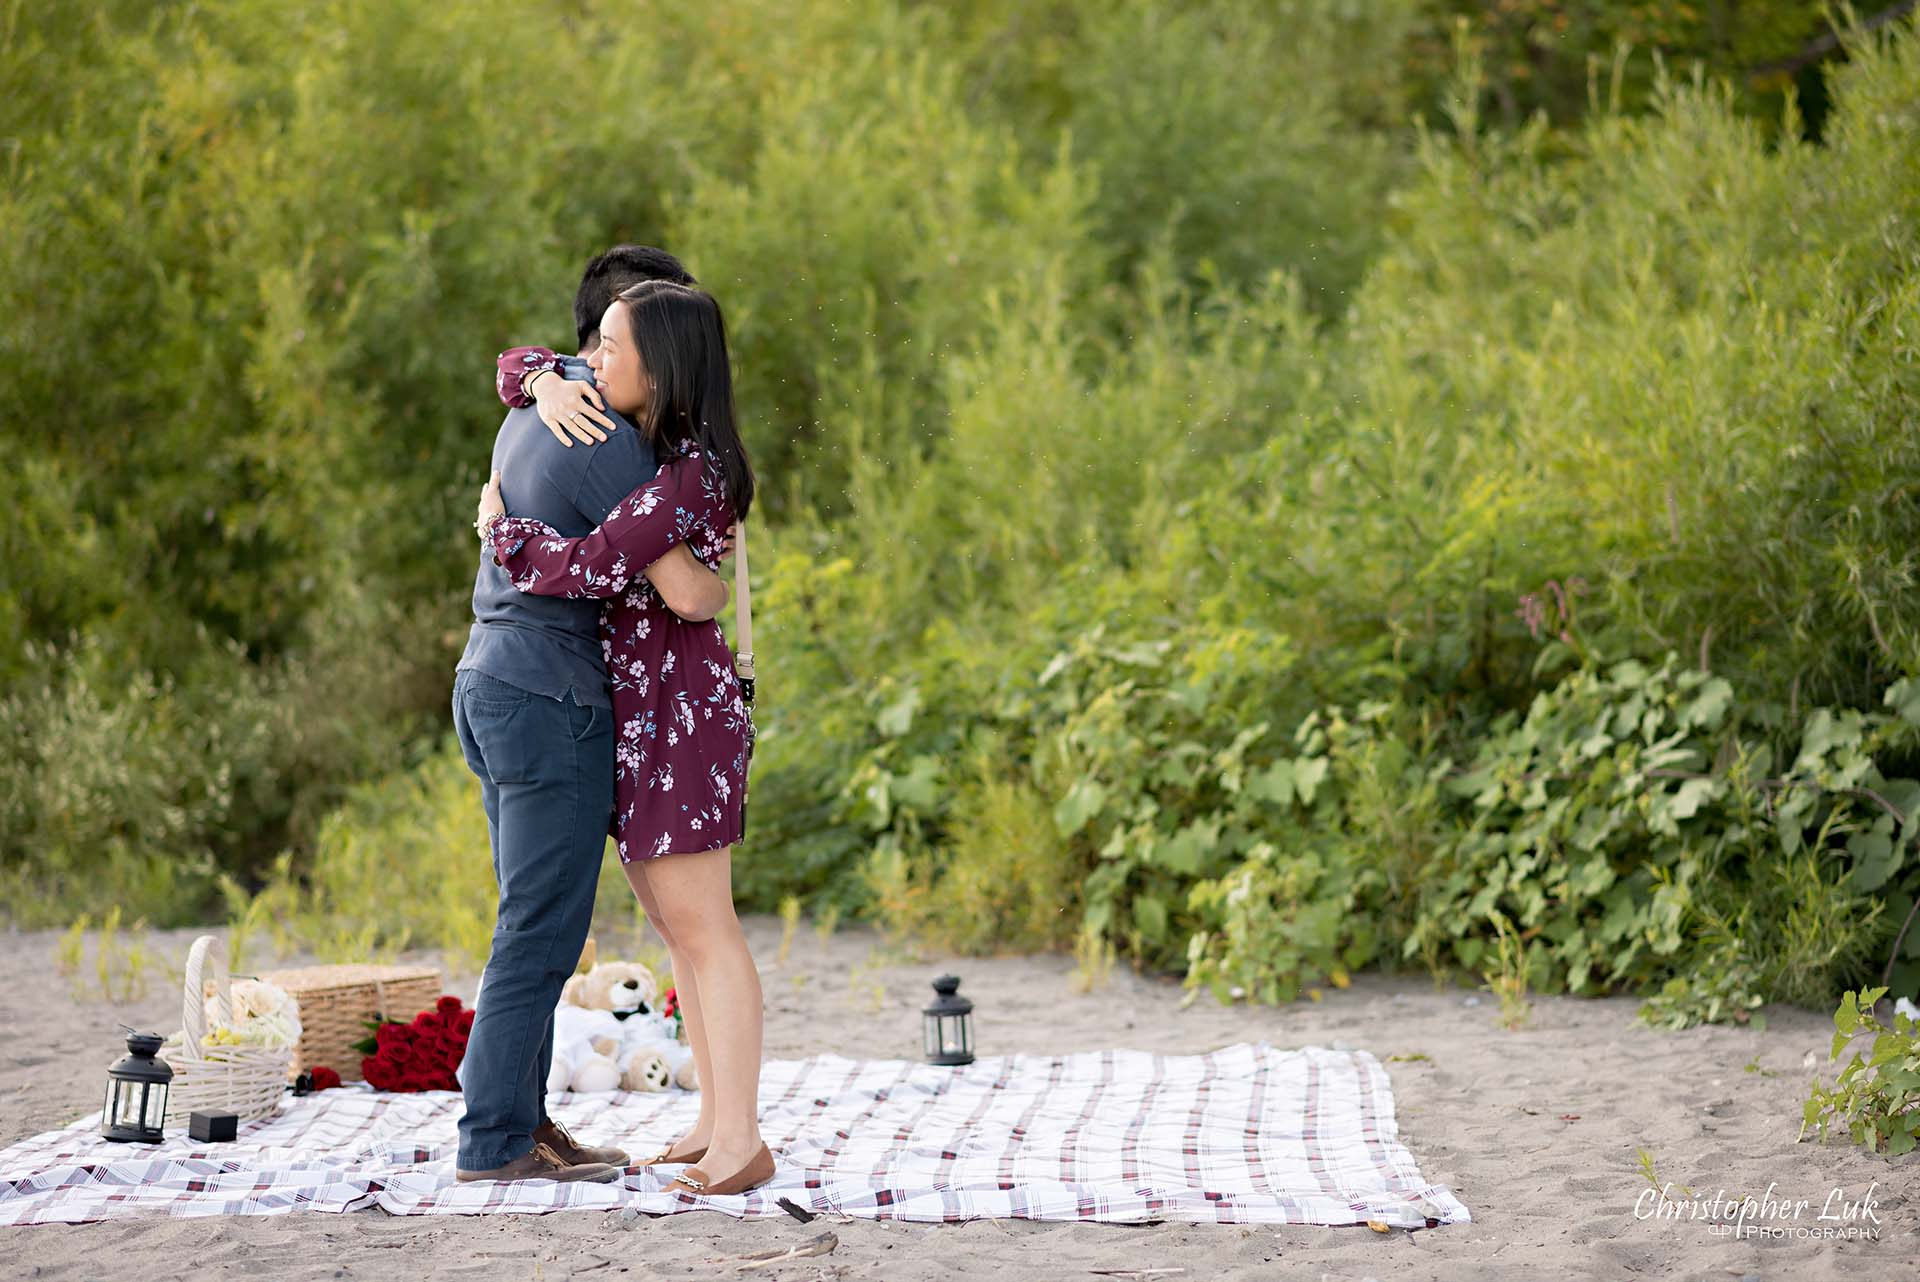 Christopher Luk Toronto Photographer Scarborough Bluffs Beach Park Sunset Surprise Wedding Marriage Engagement Proposal Candid Natural Photojournalistic Bride Groom Picnic Blanket Basket She Said Yes Engaged Ring on Finger Hug